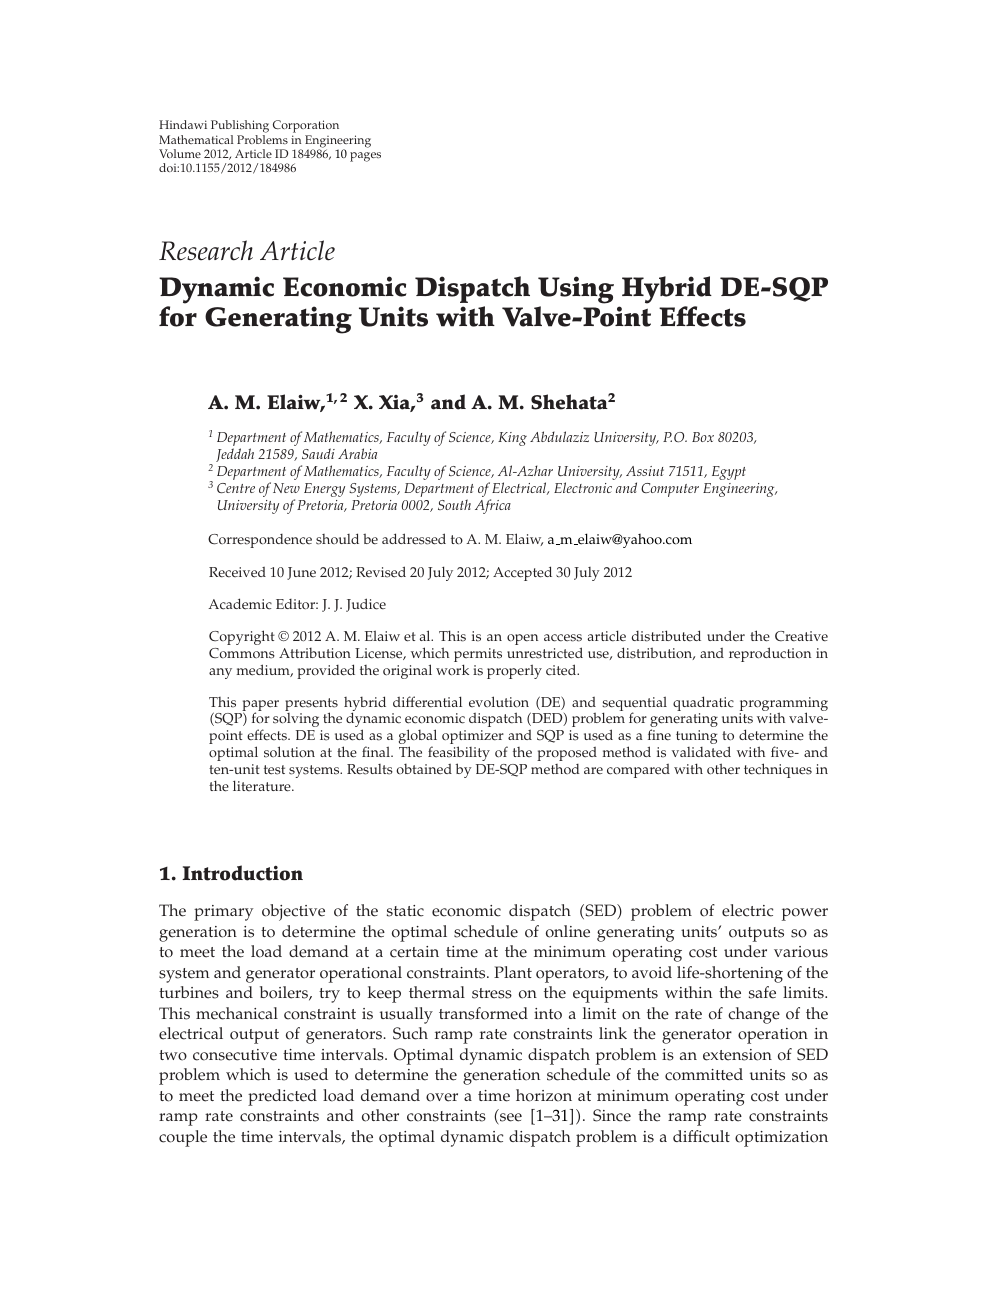 Dynamic Economic Dispatch Using Hybrid DE-SQP for Generating